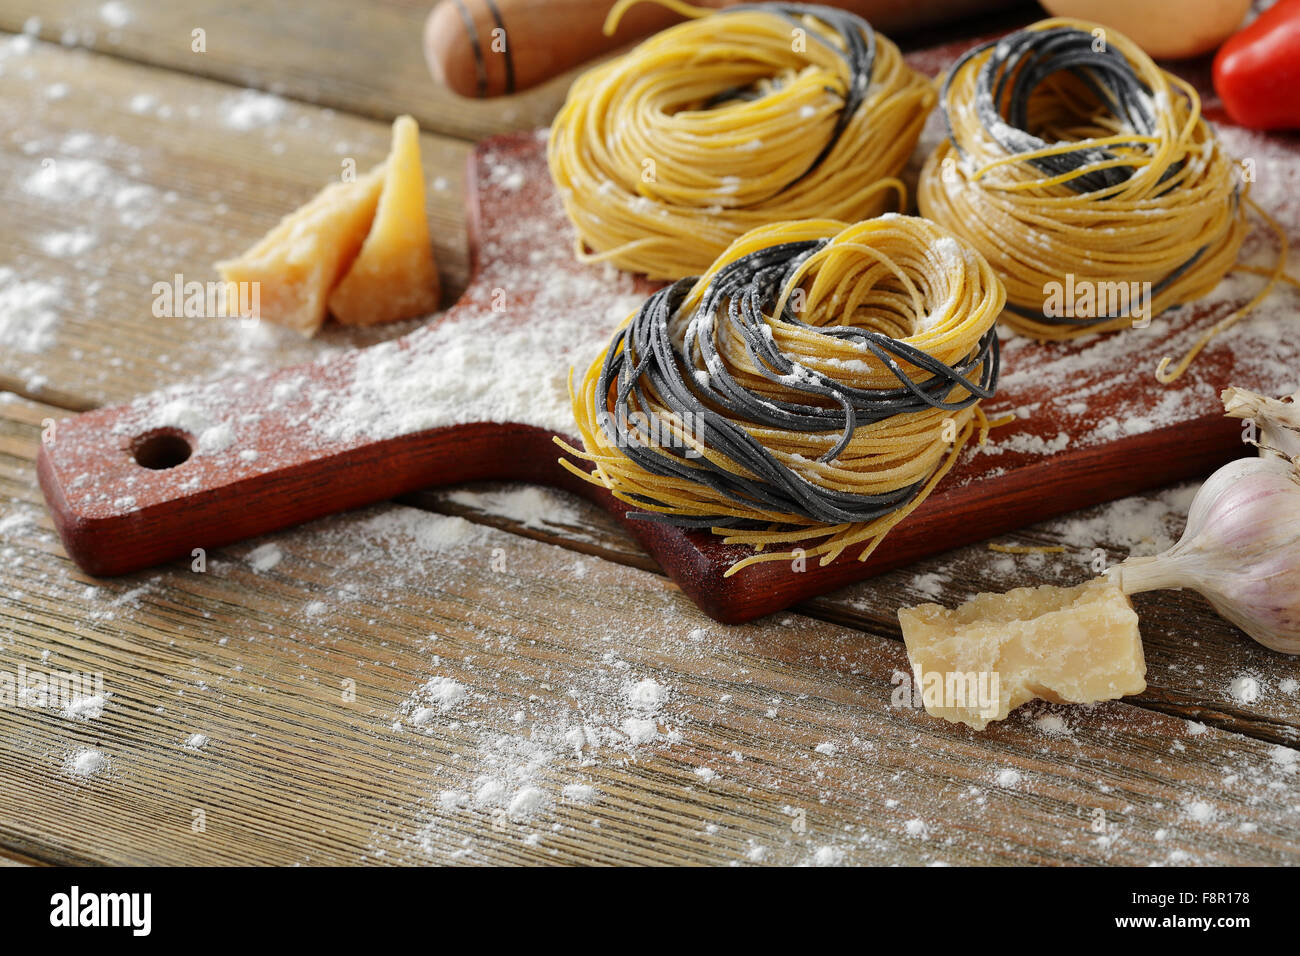 pasta with cheese closeup - Stock Image